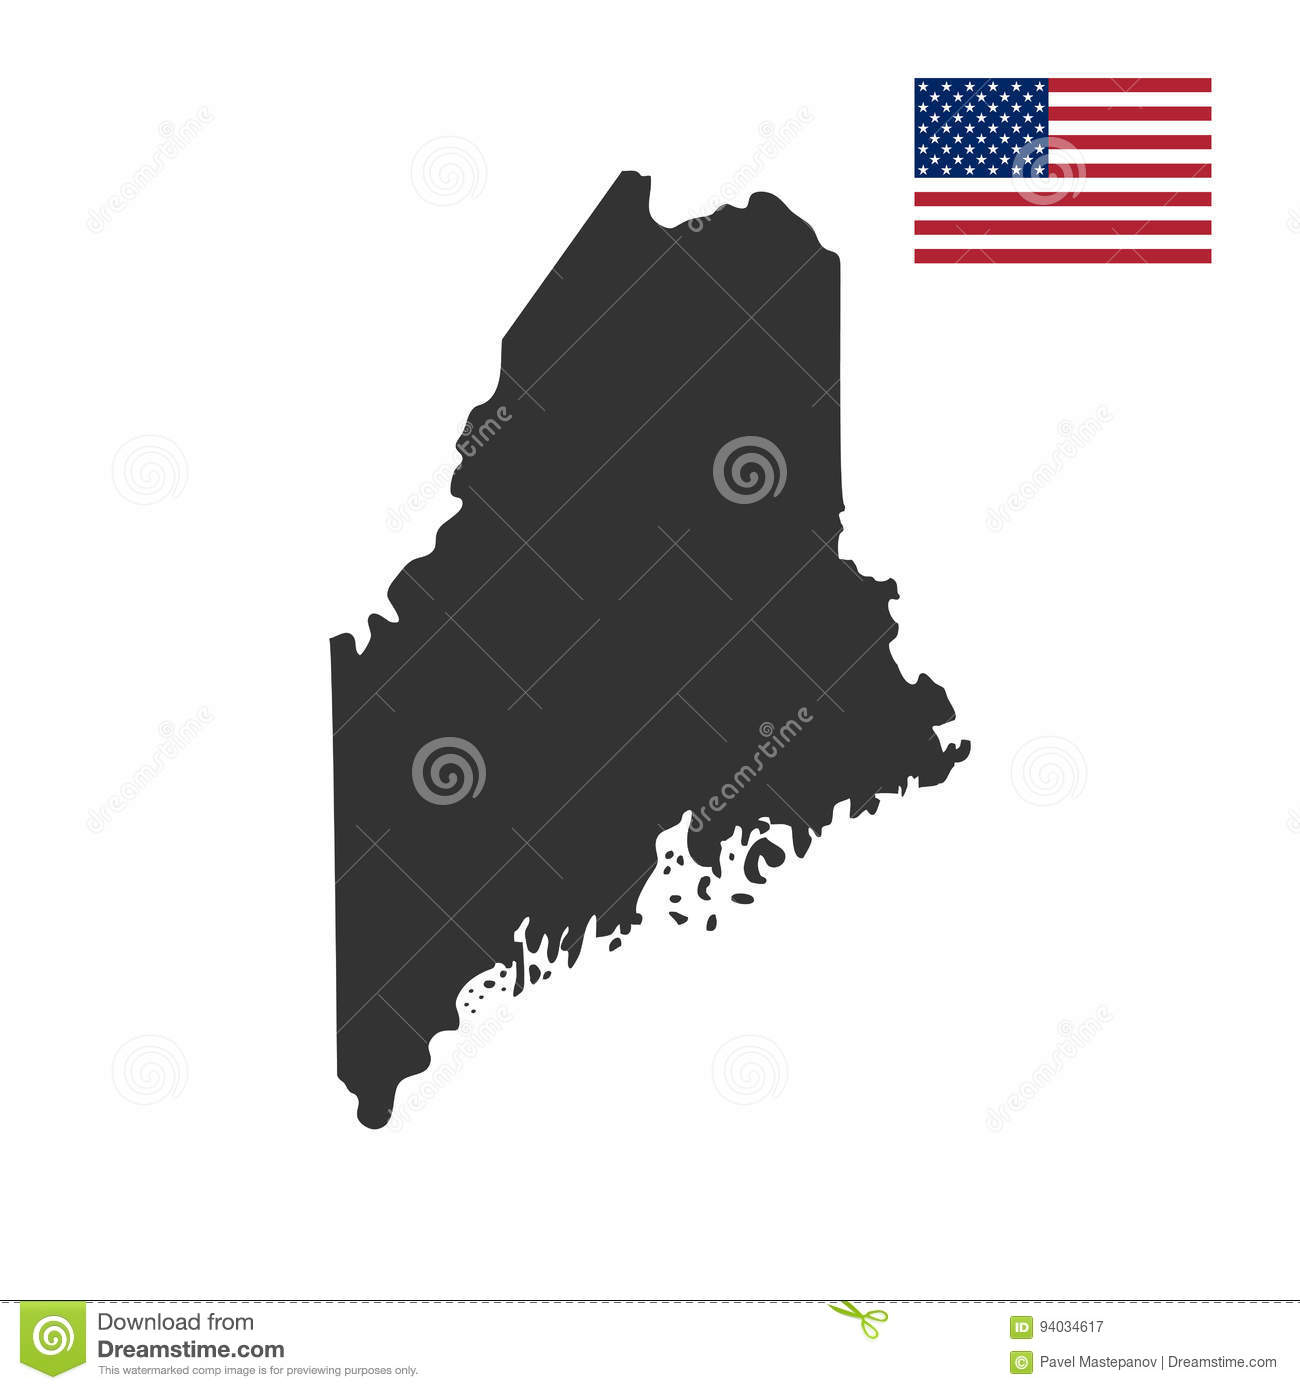 Map Of The U.S. State Maine Stock Vector - Illustration of contour Illustrator Us Map on us map title, us map autocad, us map graphics, us map visio, us map stencil, us map print, us map drawing, us map flash, us map teacher, us map illustration, us map technology, us map art, us map excel, us map cook, us map vector, us map jpeg, us map pdf, us map black, us map html5,